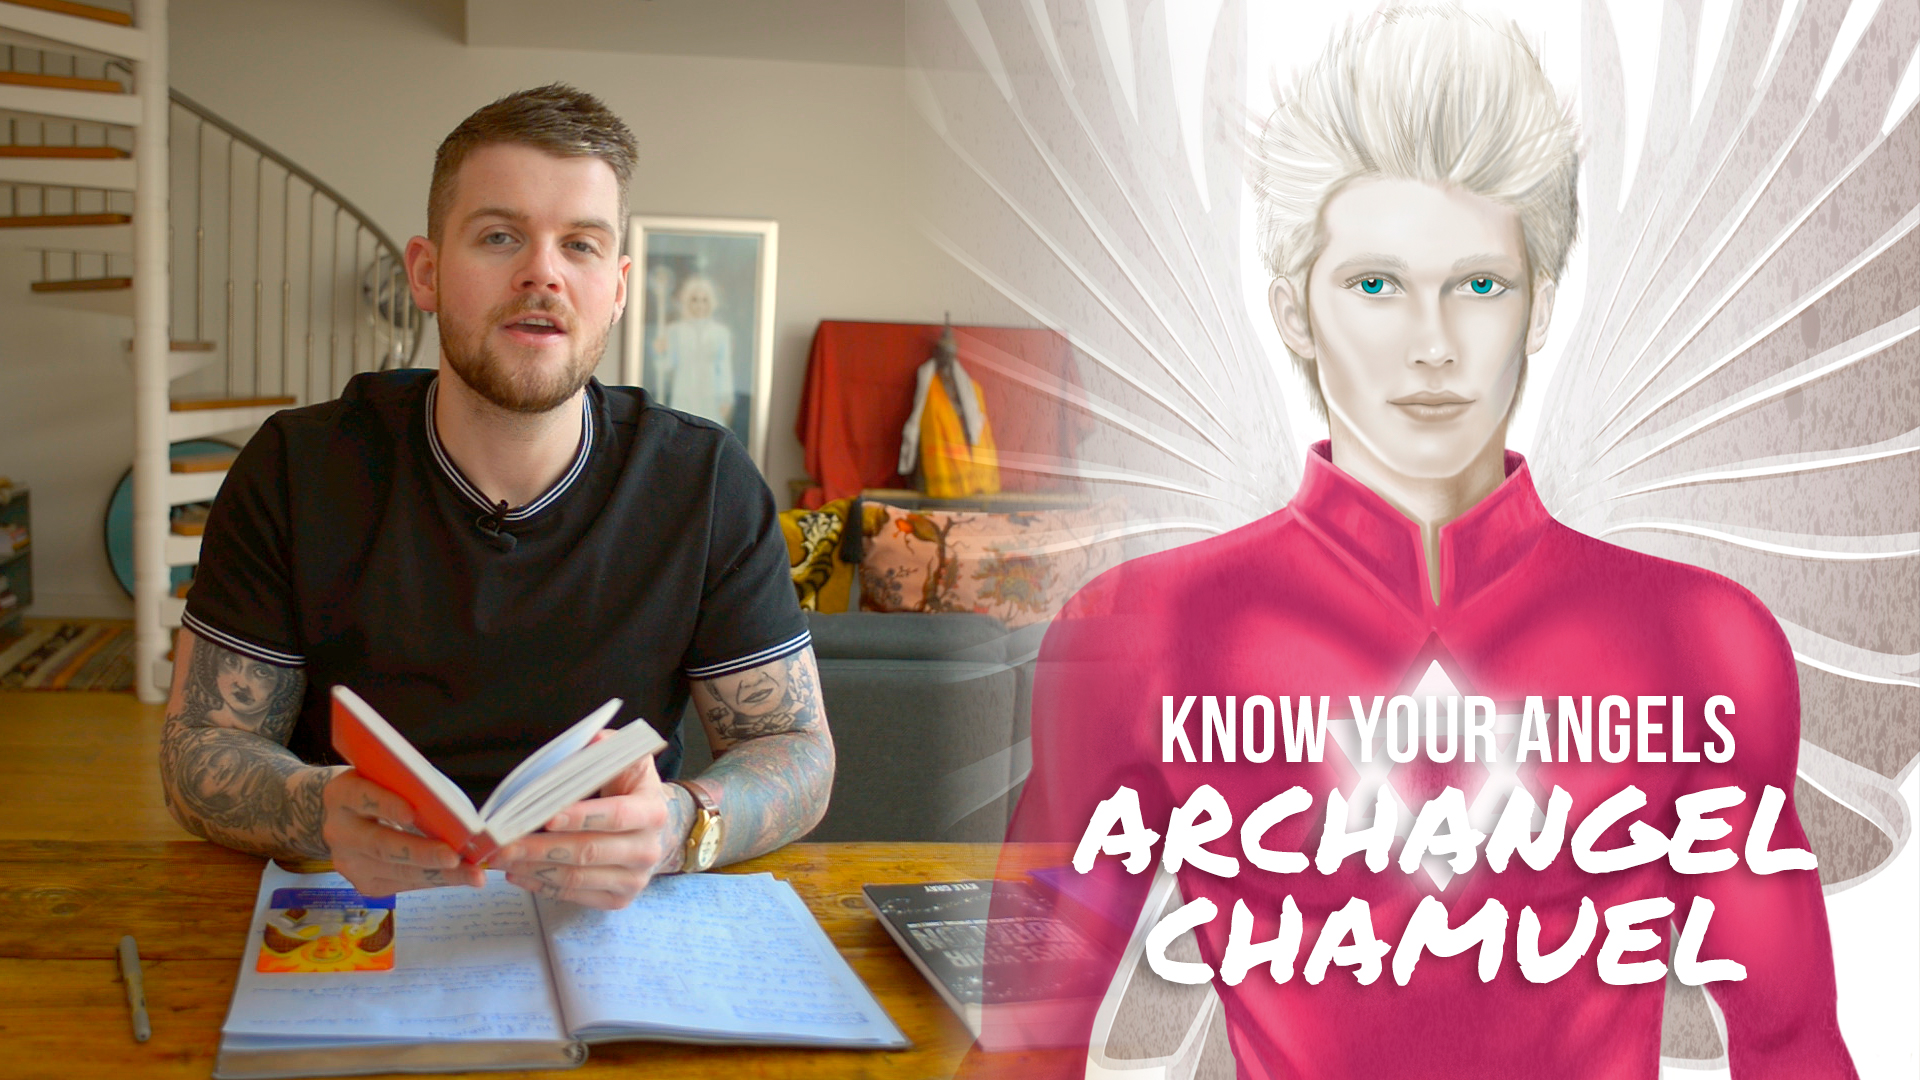 know_your_angels_thumbnail_5_chamuel.jpg